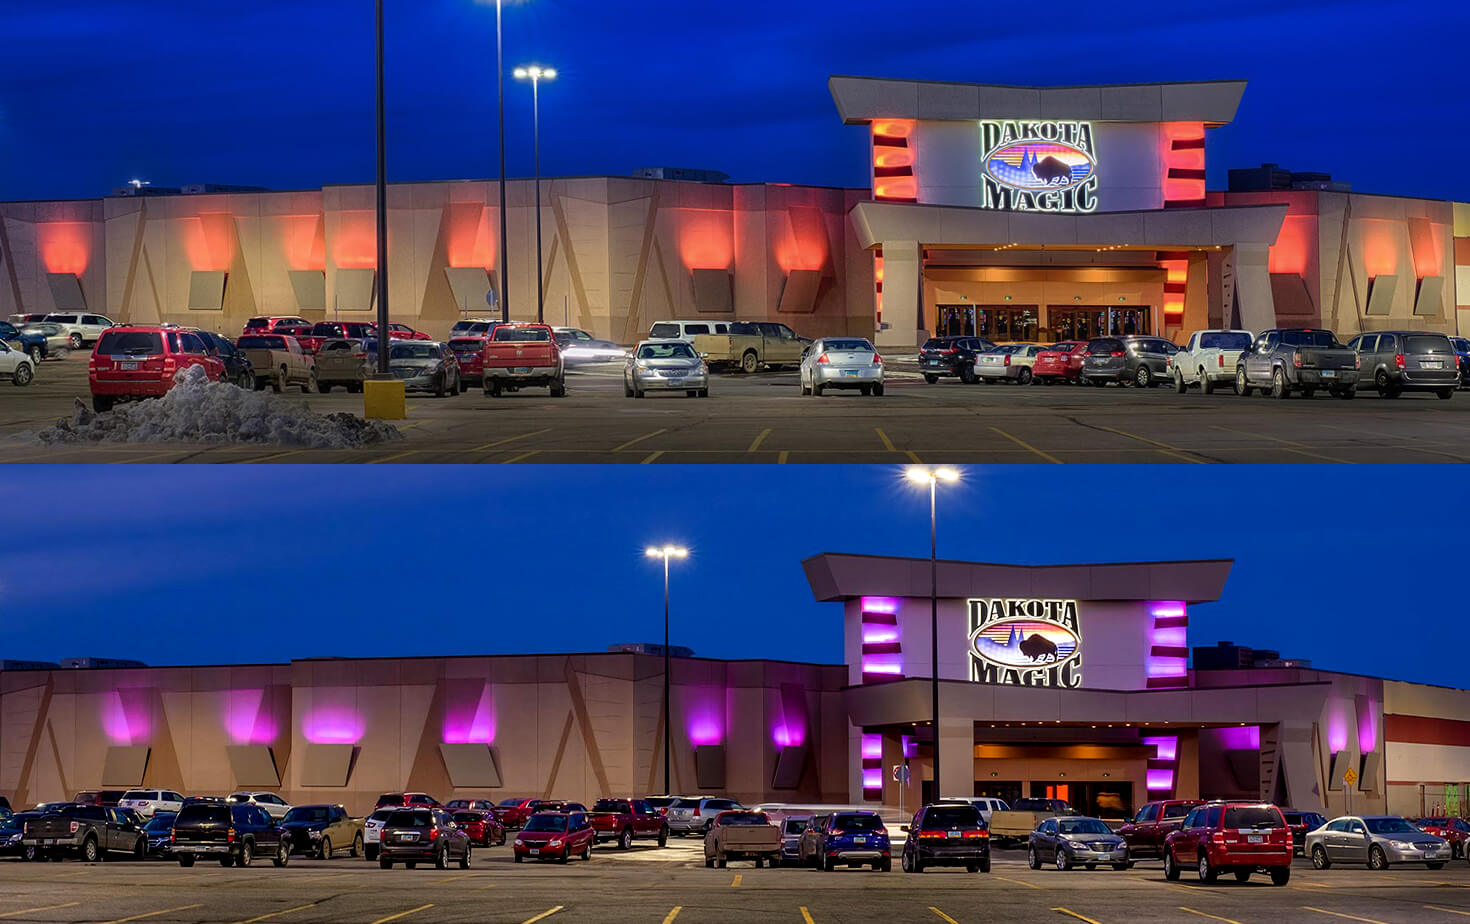 Dakota Magic Casino Hankinson ND Building Exterior Architectural Lighting and Channel Letters Purple and Orange Lighting